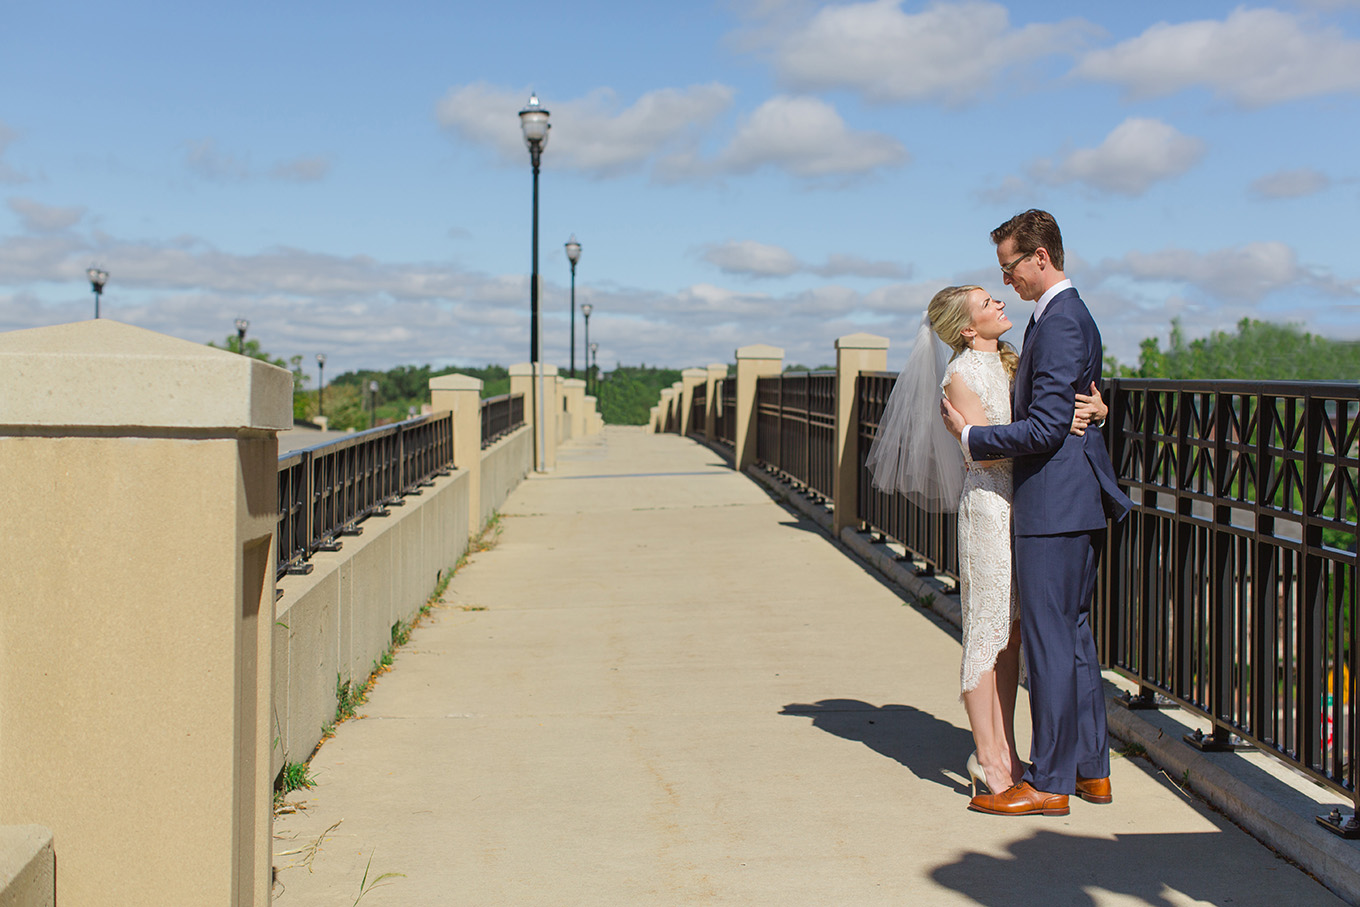 Ann Arbor Wedding The Gandy Dancer Photos